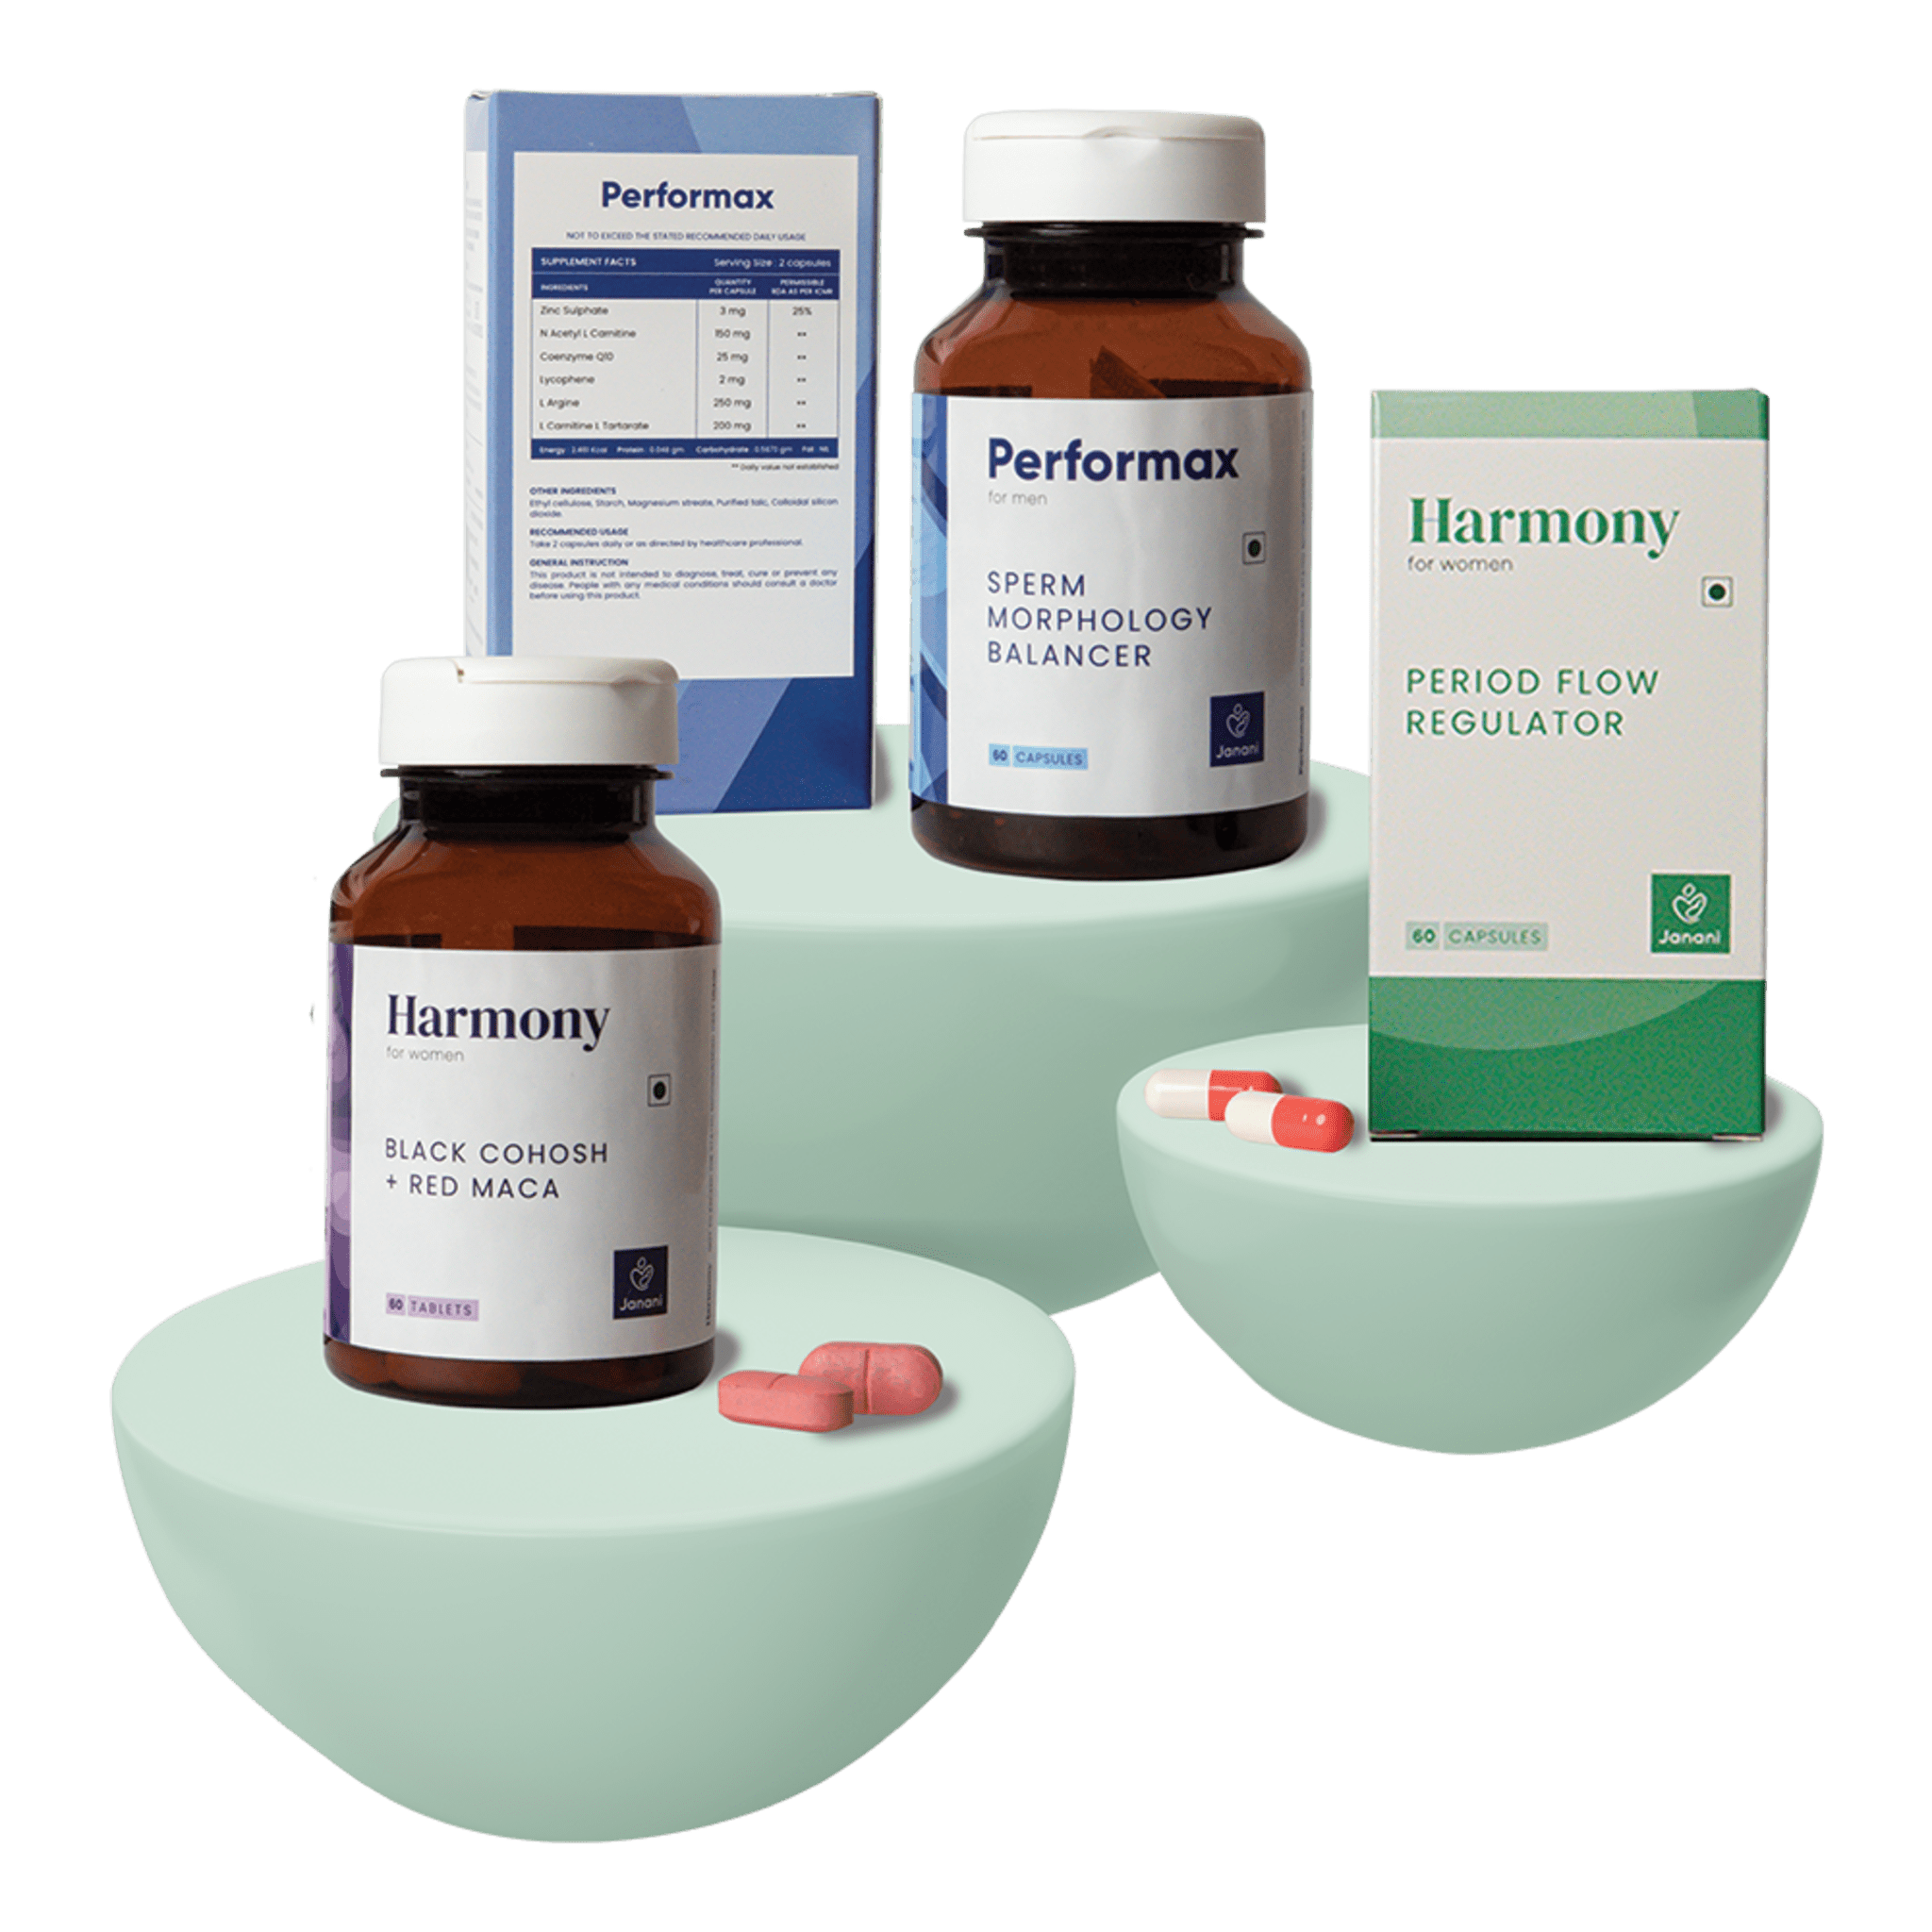 marketplace collection of nutraceuticals